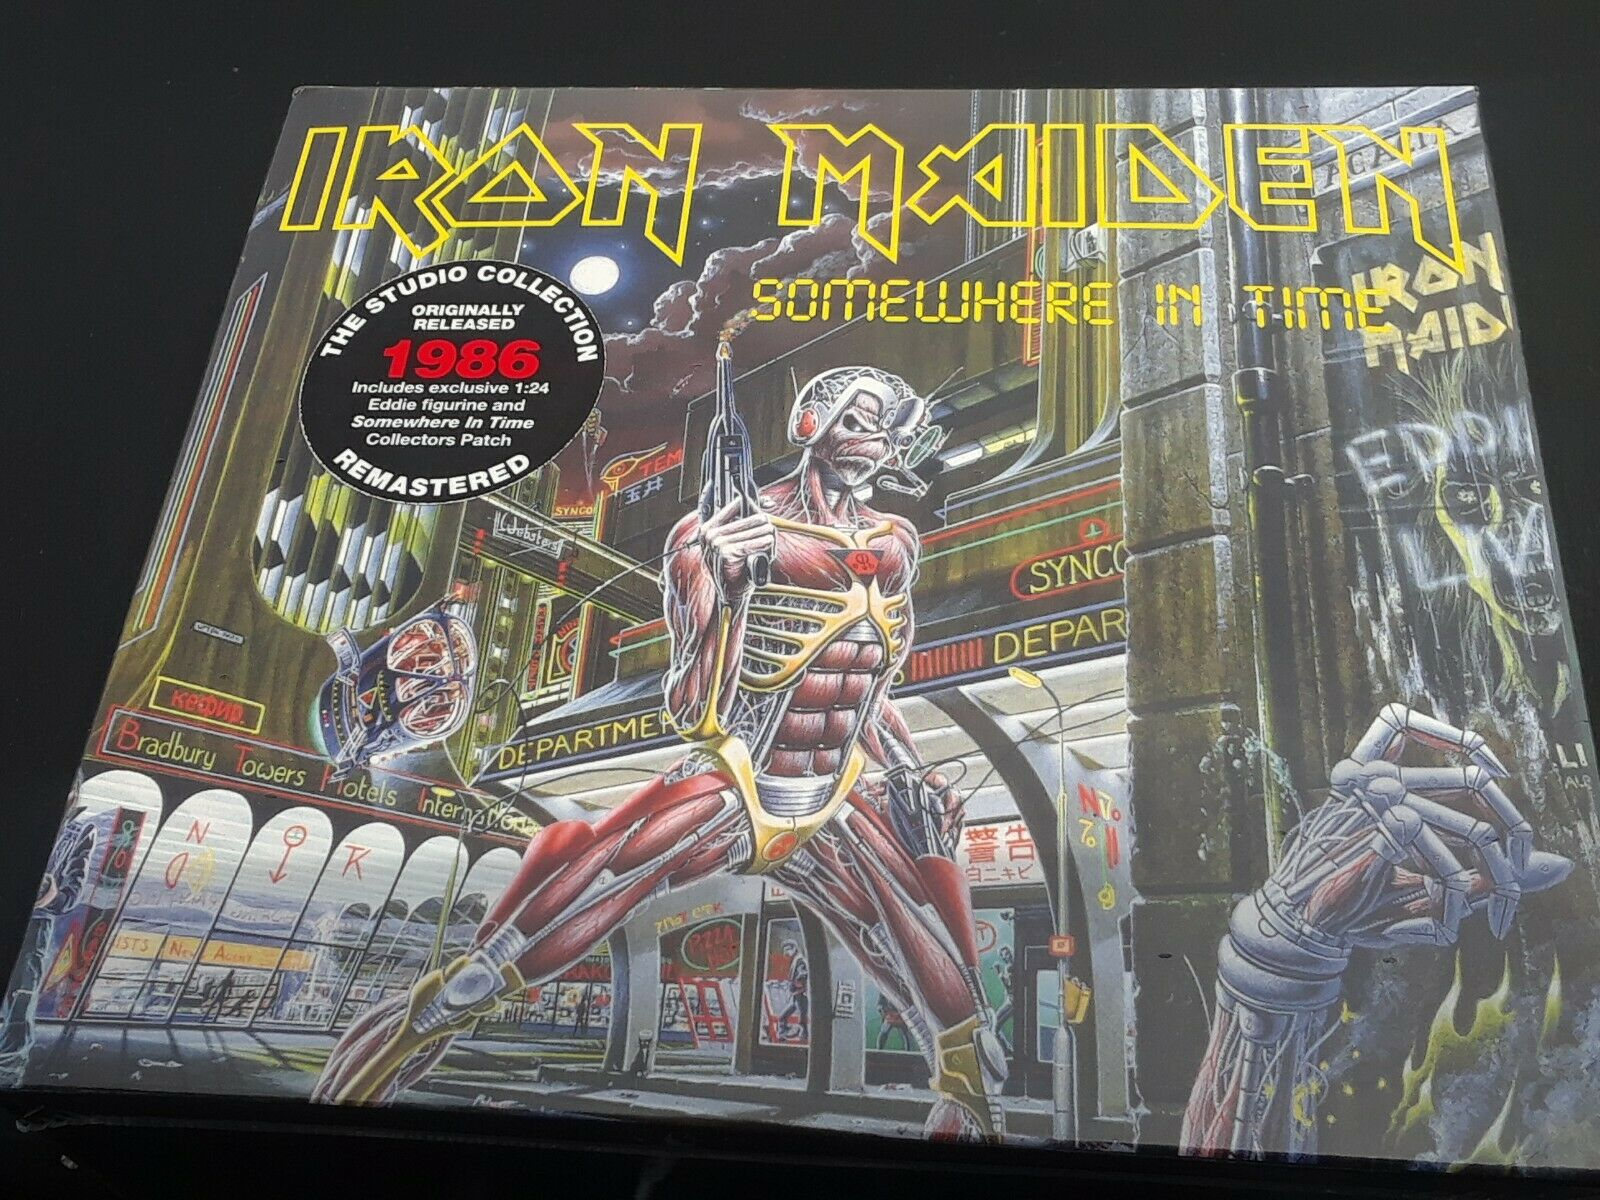 Somewhere In Time Deluxe By Iron Maiden Audio Cd 4050538427042